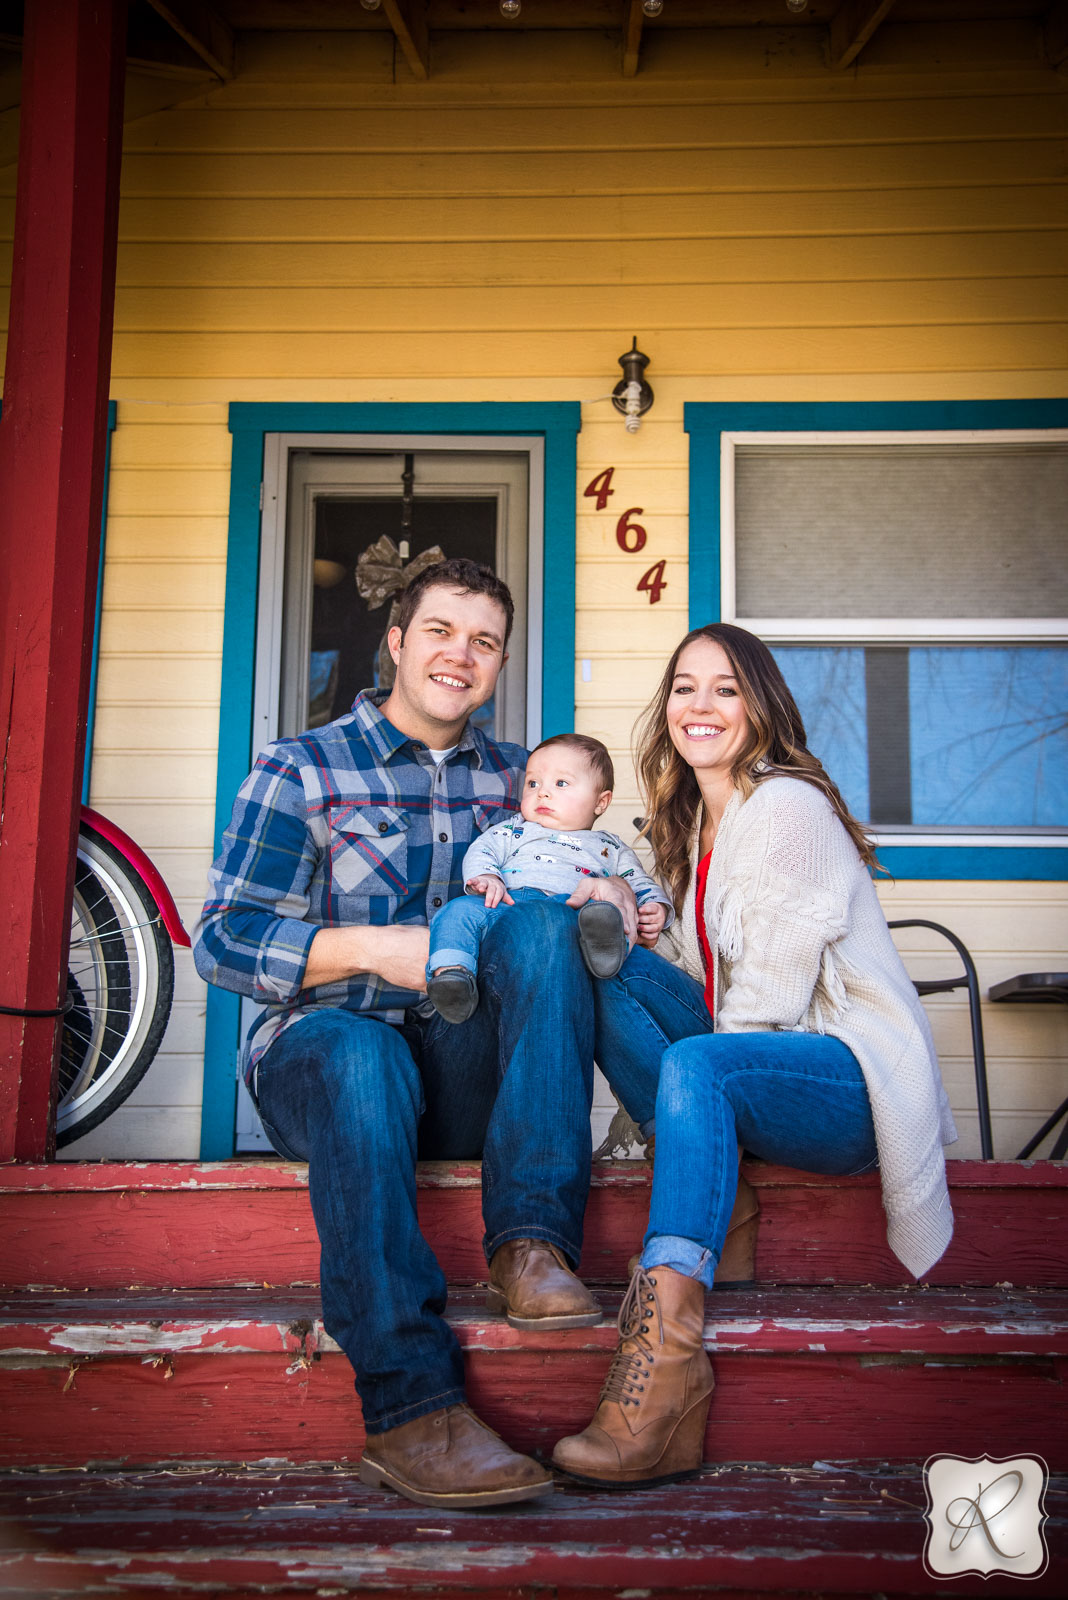 Professional family and baby portraits by Allison Ragsdale Photography